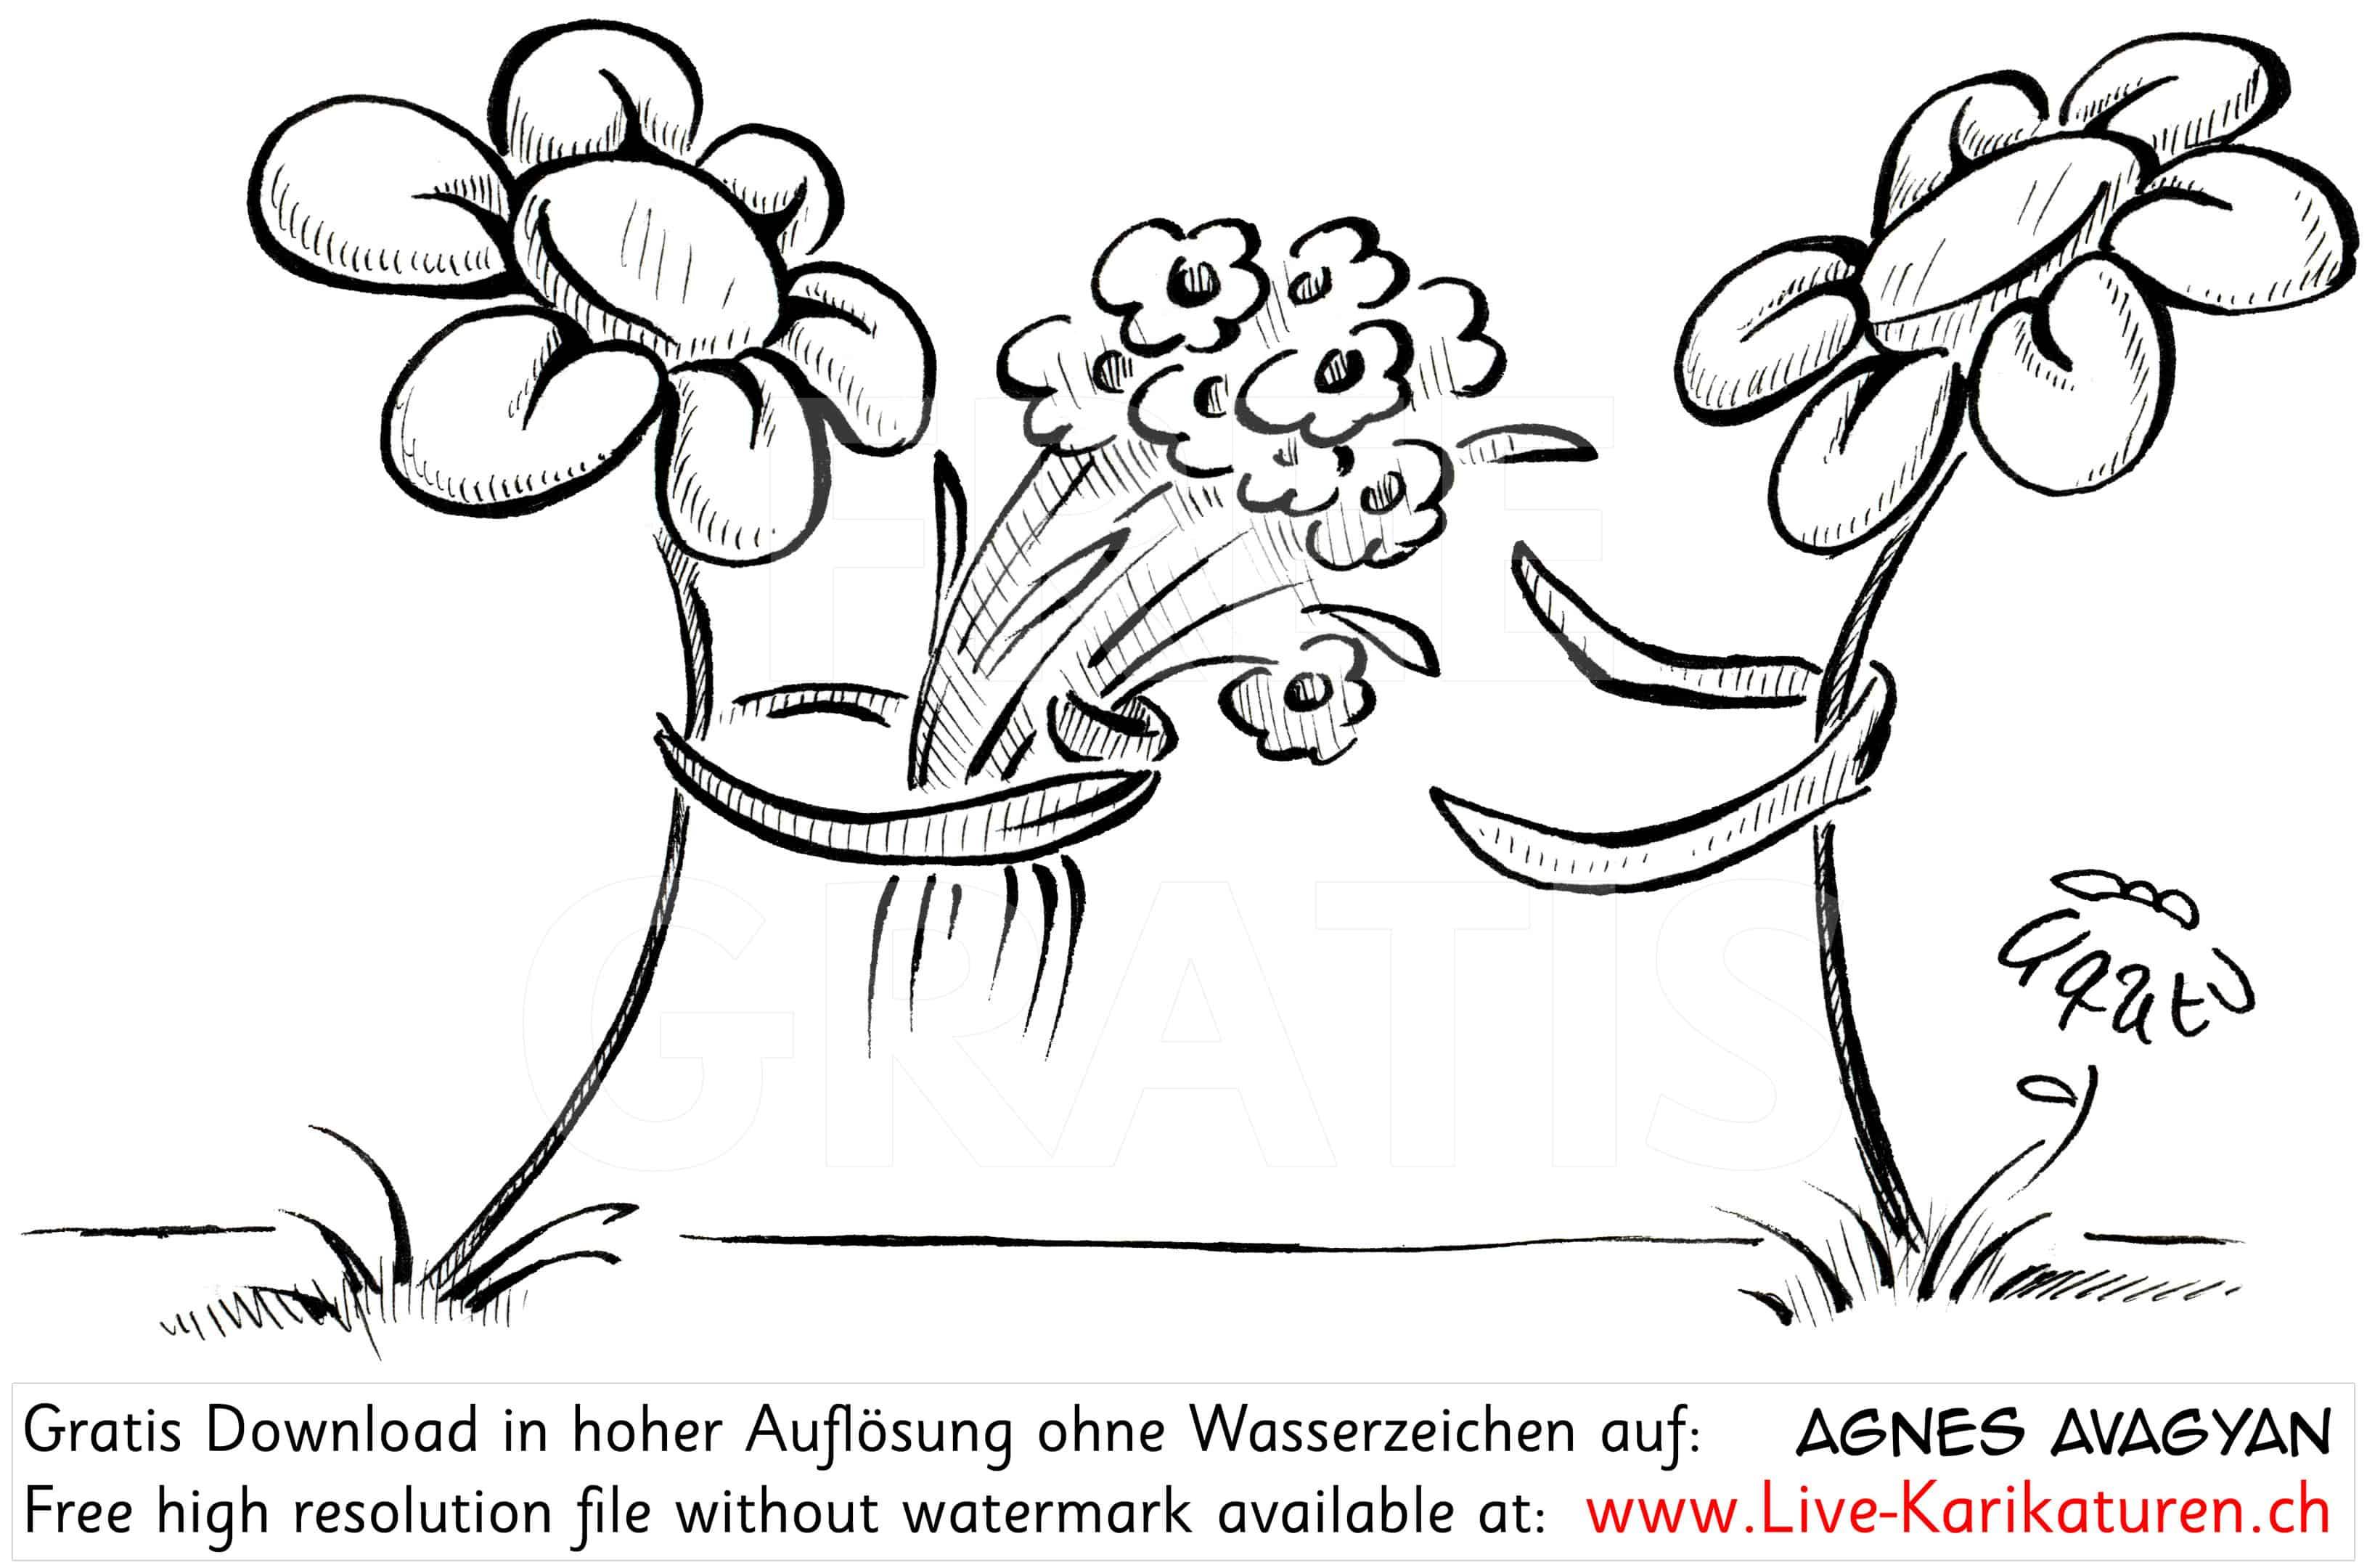 Blume schenkt anderer Blume Blumenstrauss Liebe romantisch Romantik mit Armen zwei Blumen schwarzweiss Agnes Karikaturen gratis free Clipart Comic Cartoon Zeichnung Illustration transparent PNG